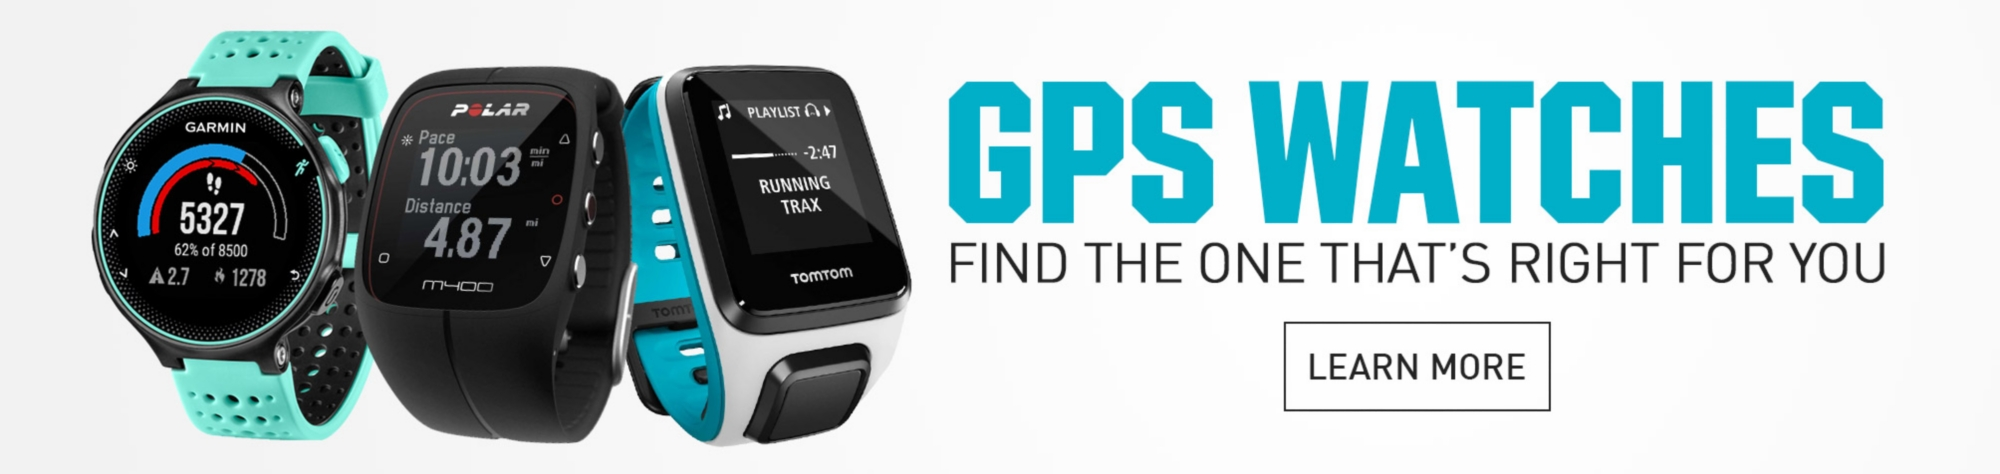 GPS Watches - Find the one that's right for you